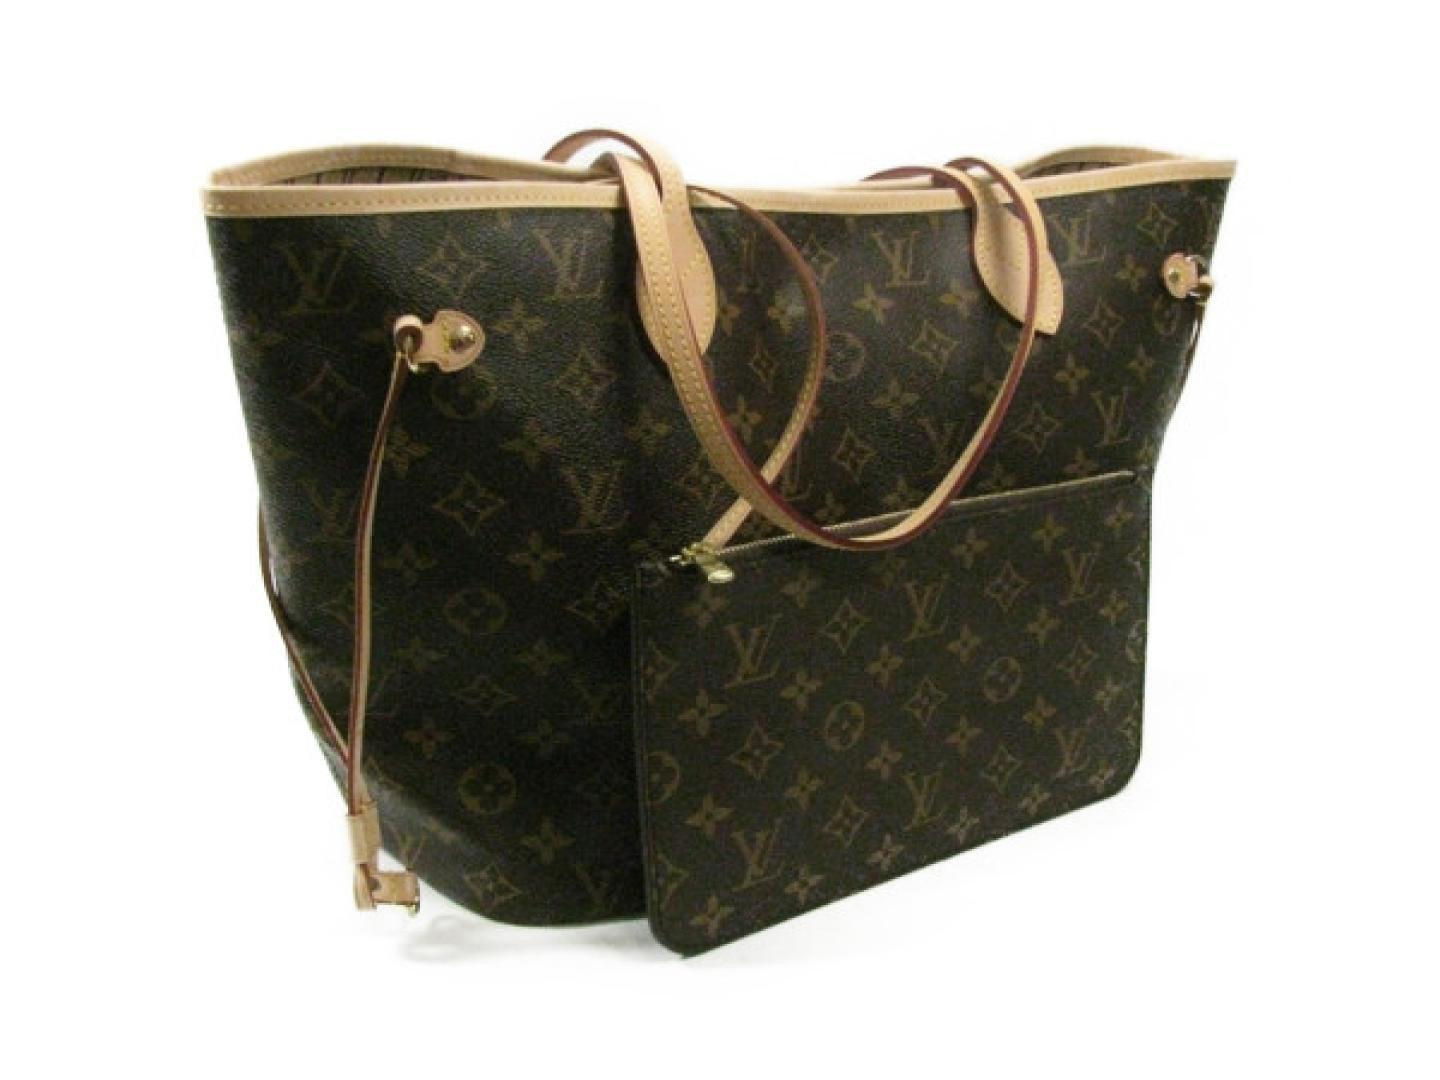 302aa73253be Lyst - Louis Vuitton Neverfull Mm Shoulder Tote Bag Monogram Canvas ...